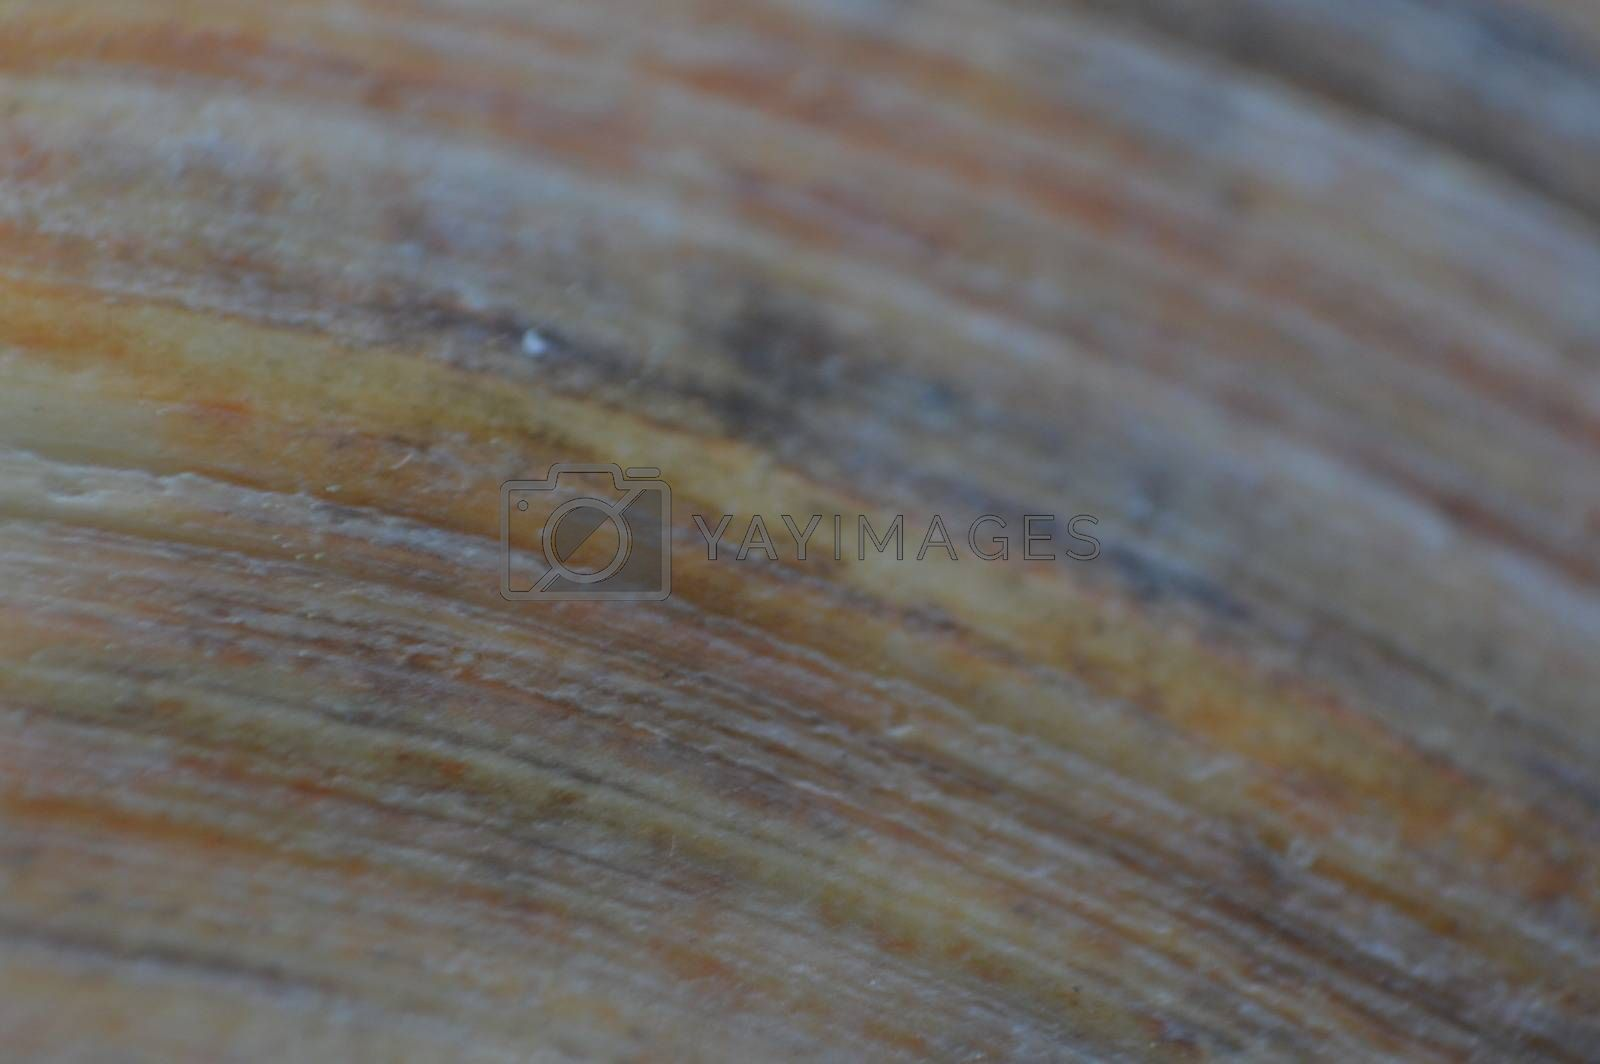 Texture of seashells from the sea and ocean macro photo by Prokopenko